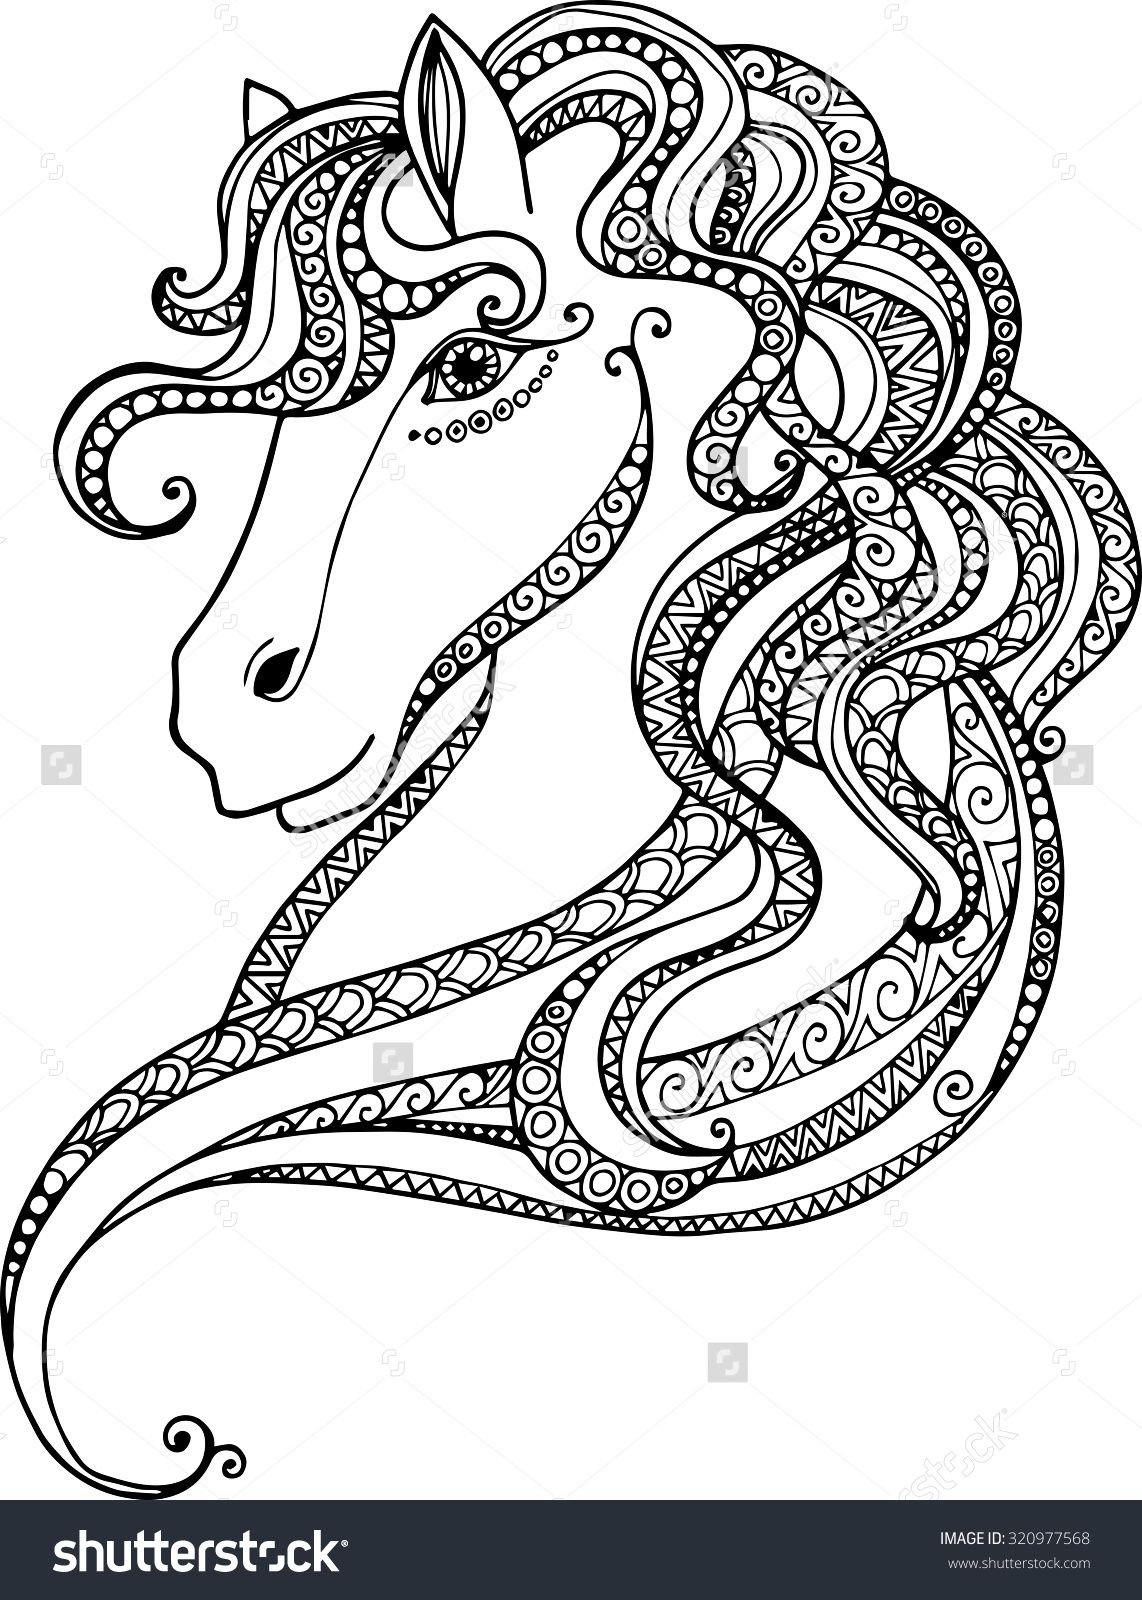 Hand drawn decorative horse head illustration. Horse drawing with ...